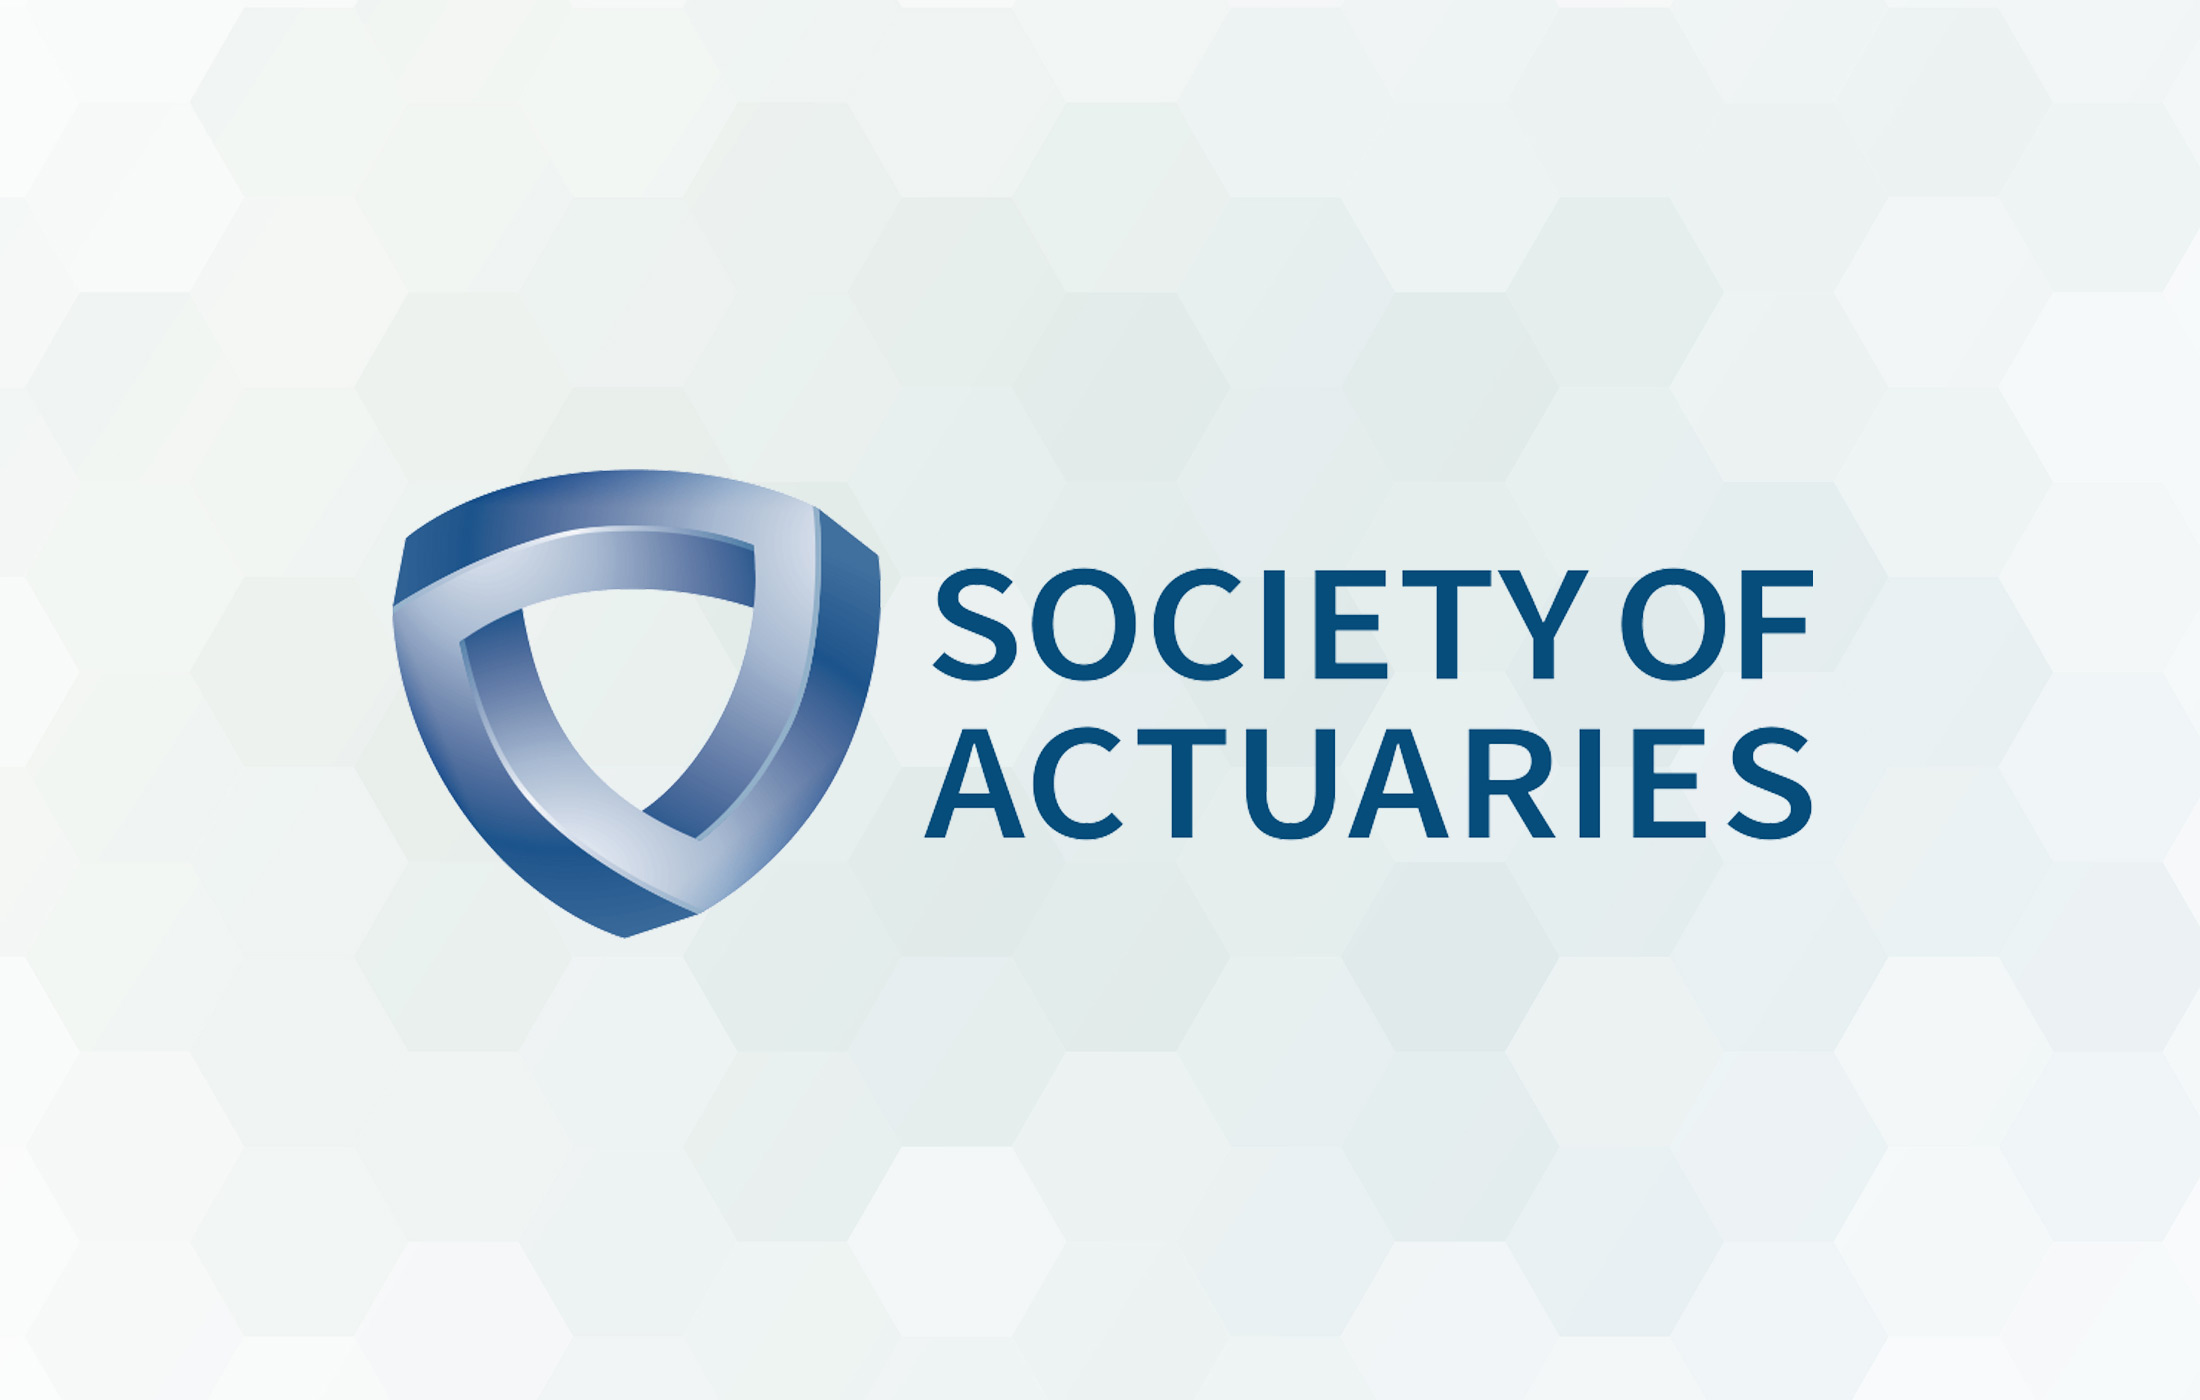 What is the Society of Actuaries